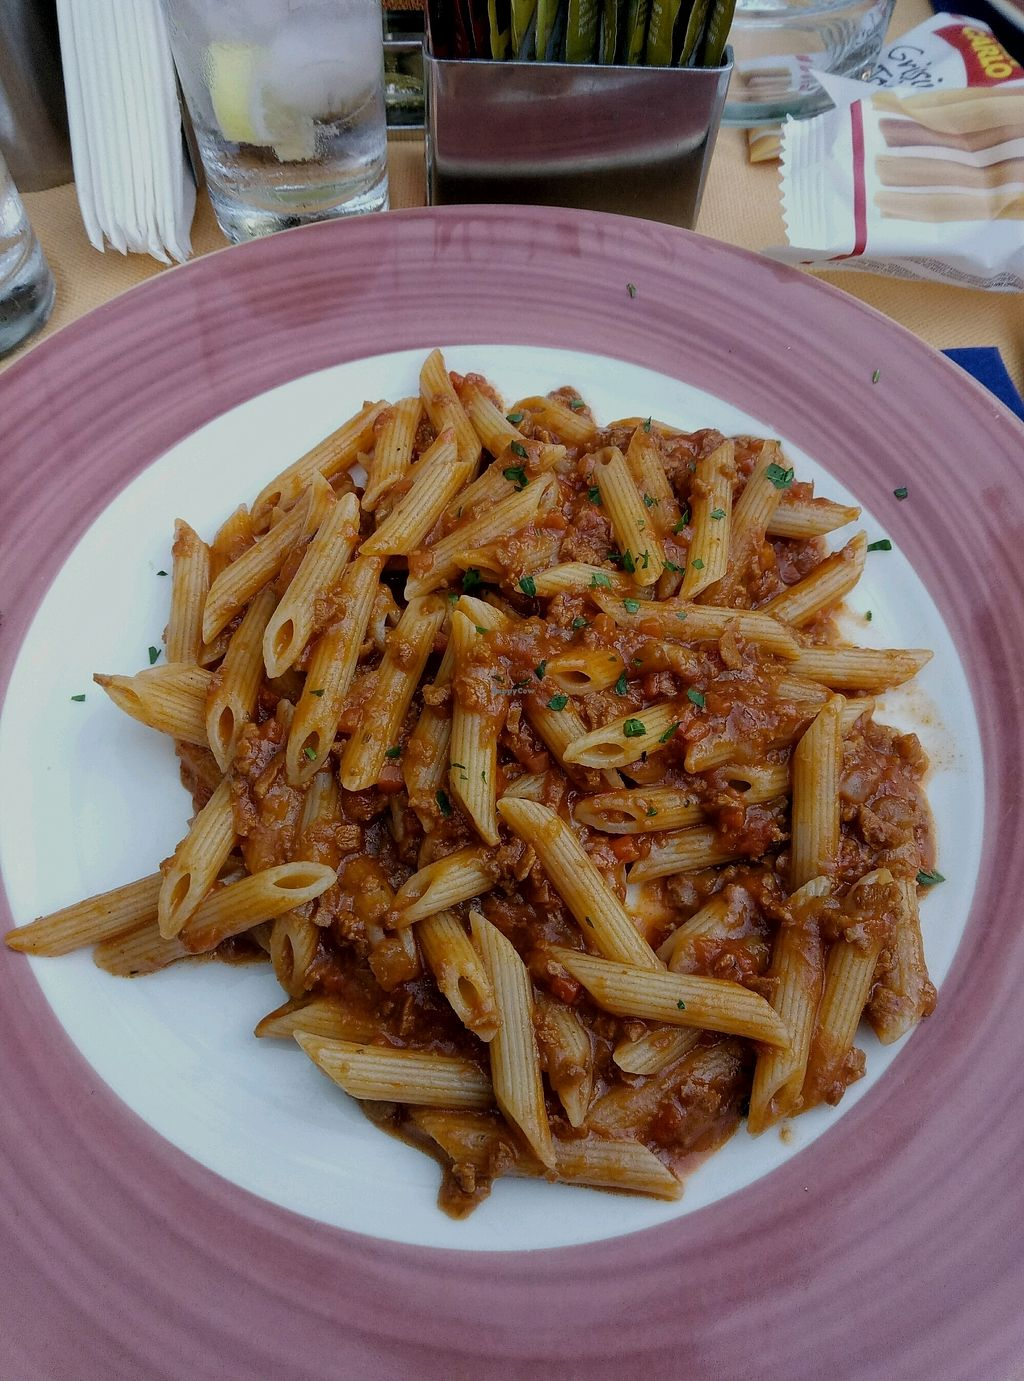 "Photo of Fauno Bar  by <a href=""/members/profile/YuvalLalyAzrad"">YuvalLalyAzrad</a> <br/>Pasta with soy ragu <br/> September 24, 2017  - <a href='/contact/abuse/image/97606/307897'>Report</a>"